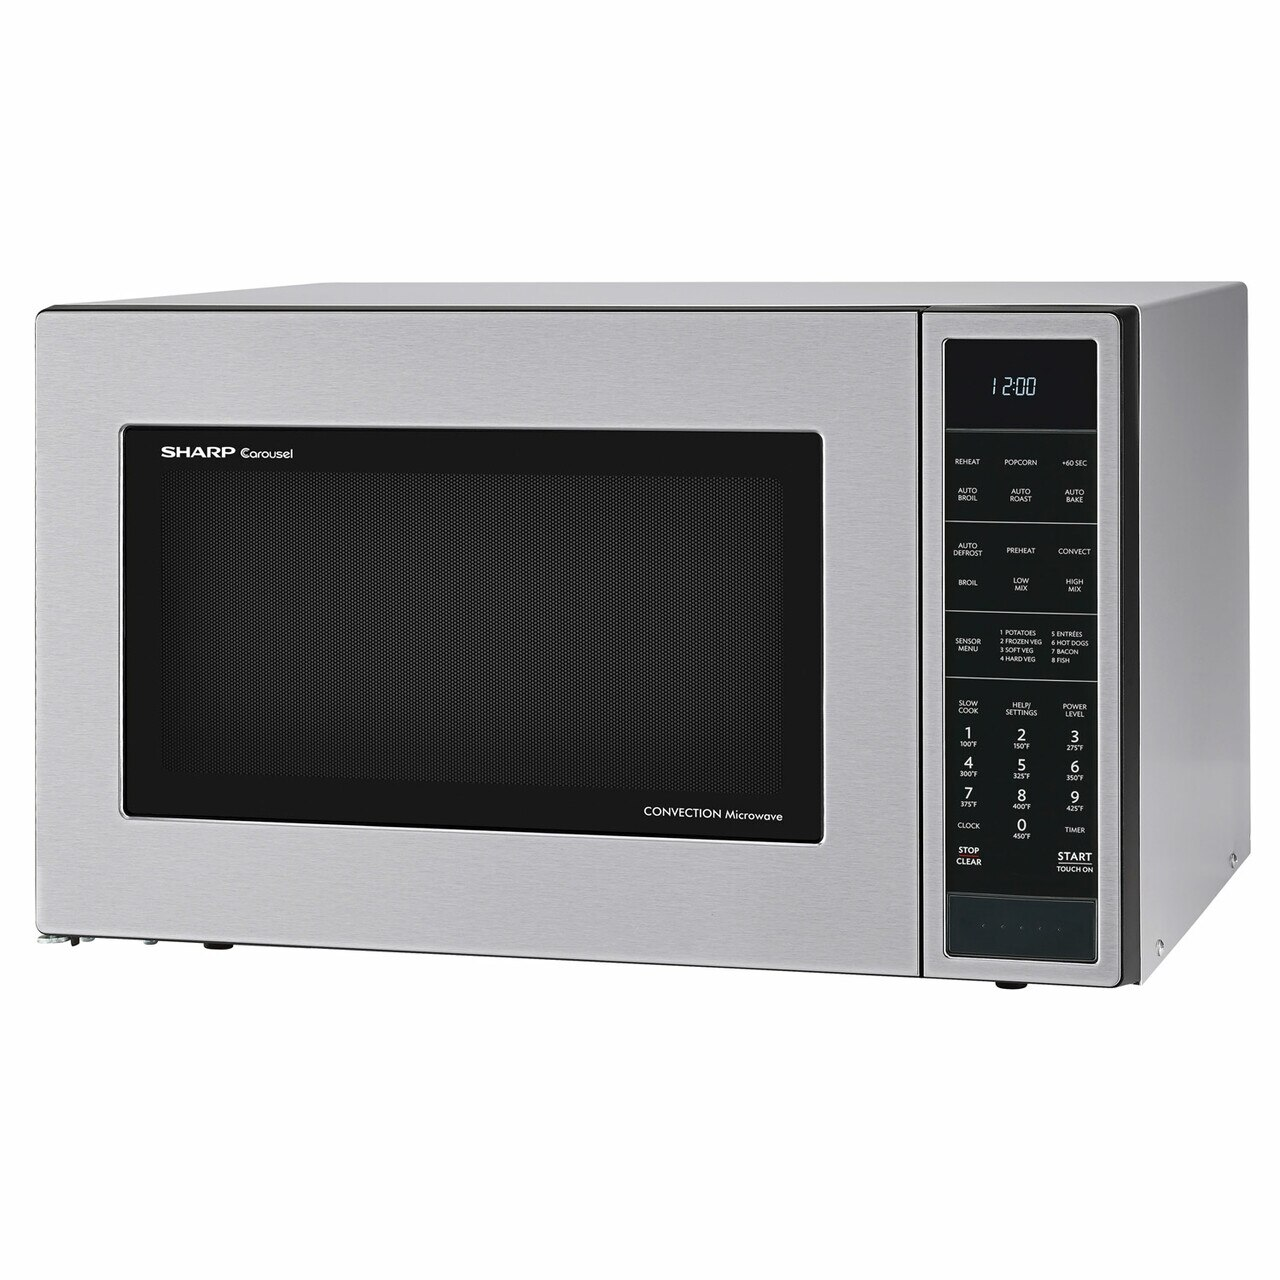 1.5 cu. ft. Sharp Stainless Steel Carousel Convection Microwave (SMC1585BS) – left angle view